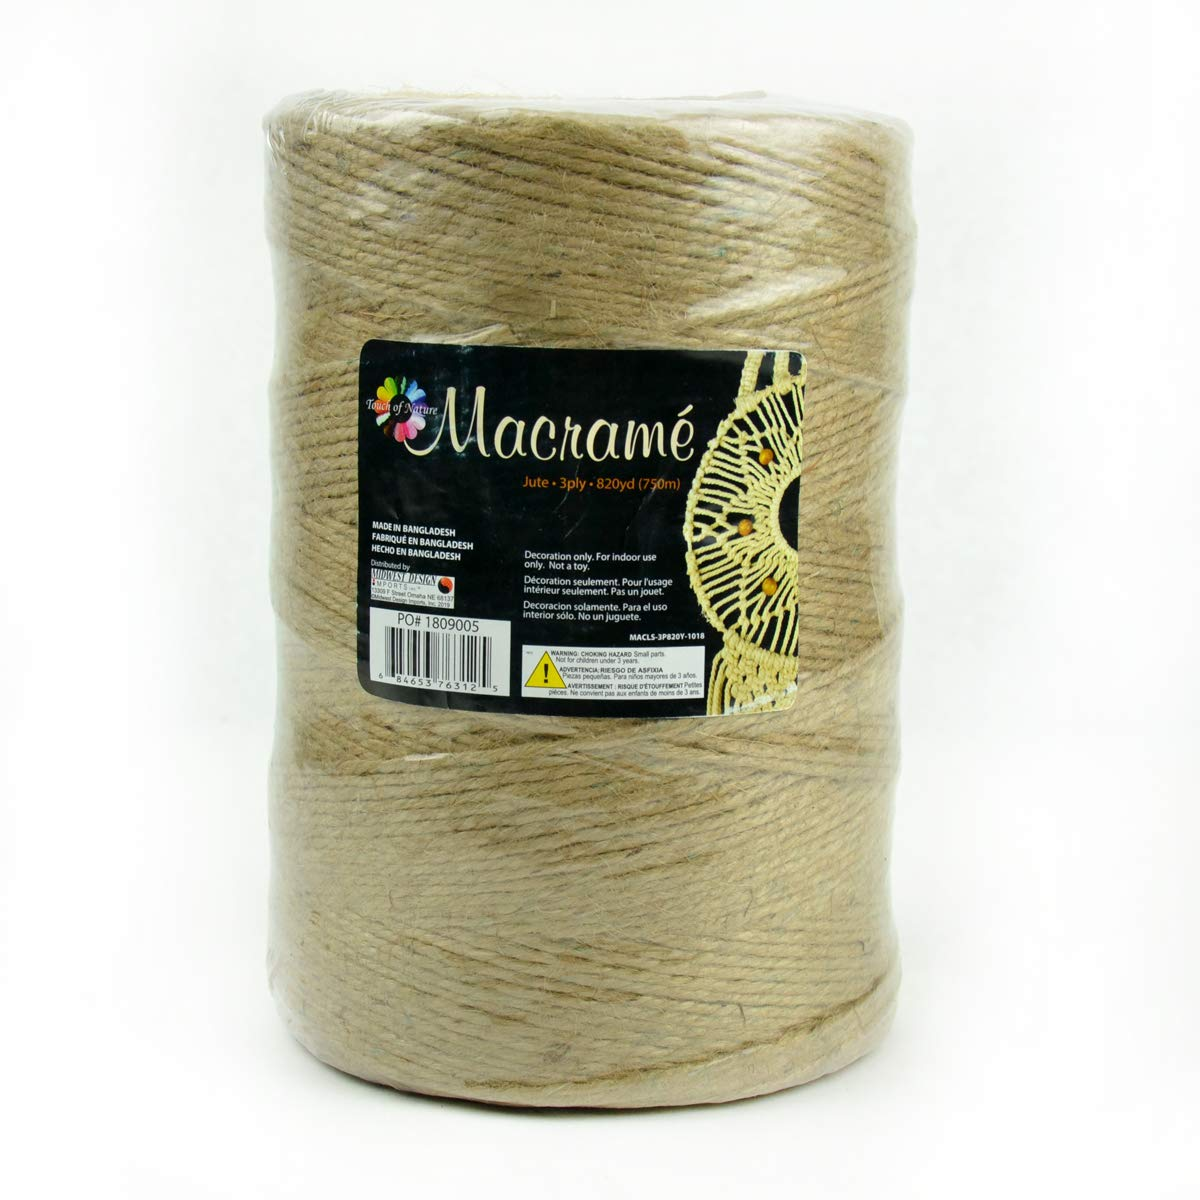 Natural Jute Twine String for Crafts 2,550 Ft - 3ply Art and Crafting String - Gift Wrapping Rope by Touch of Nature by Touch of Nature